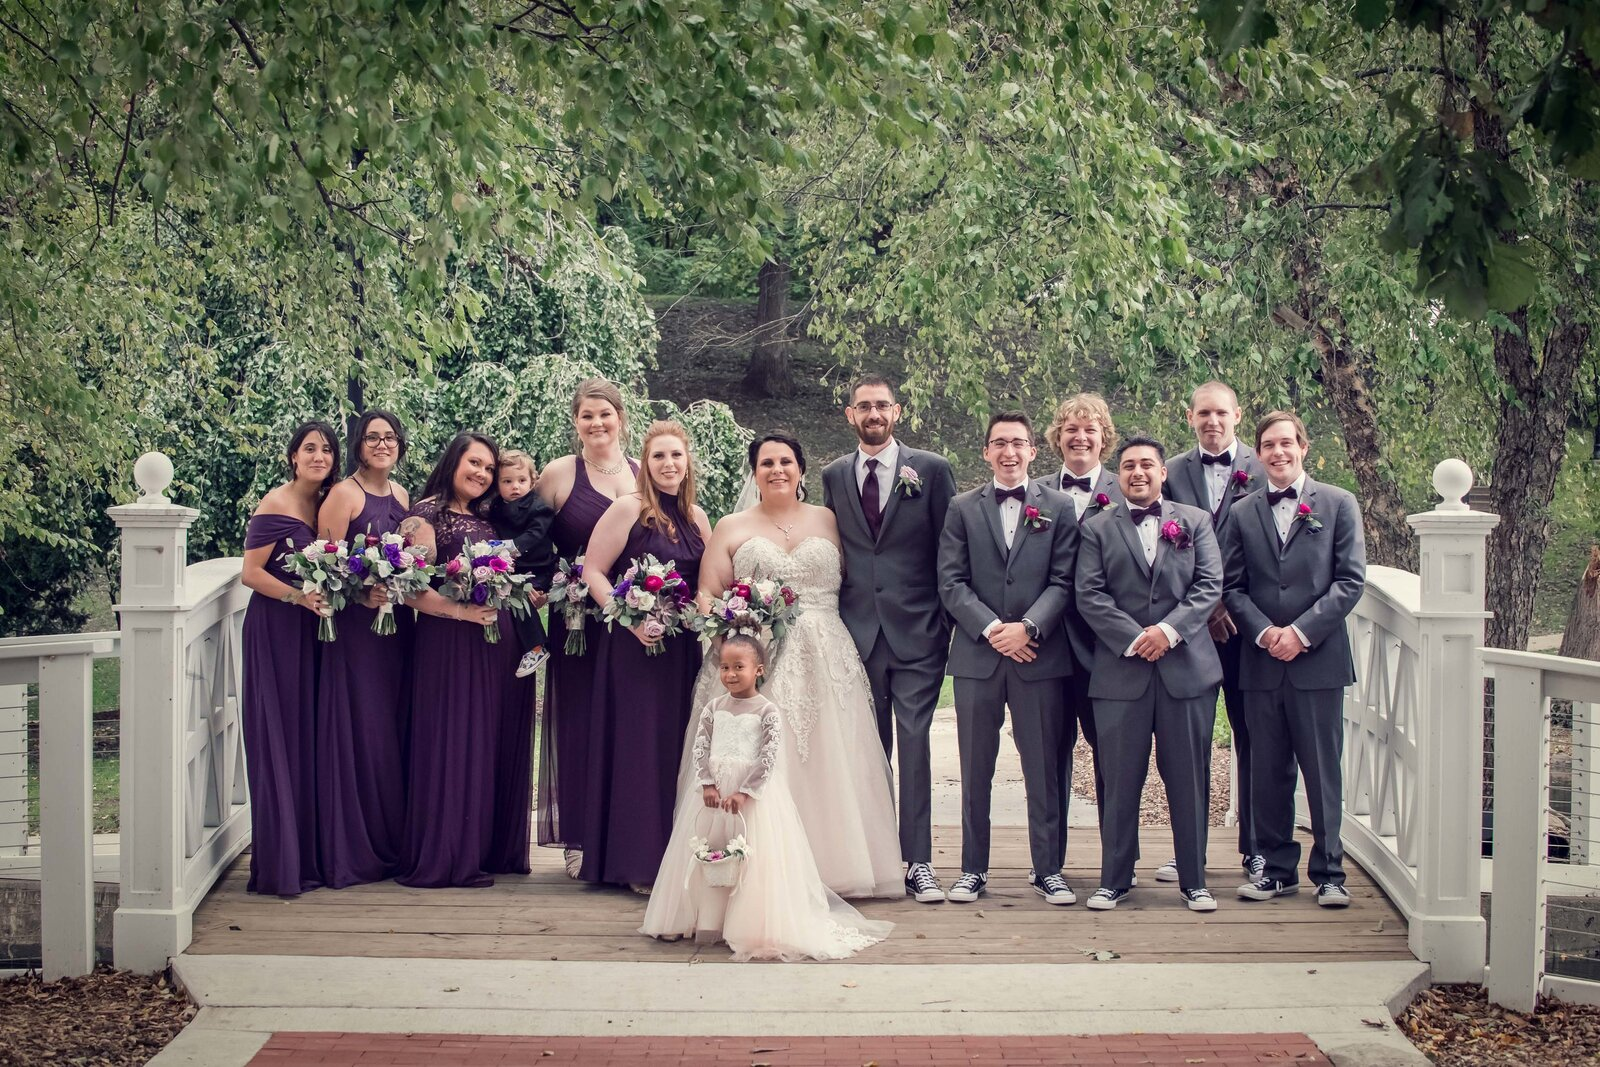 wedding-bridal-party-bride-groom-portrait-lords-park